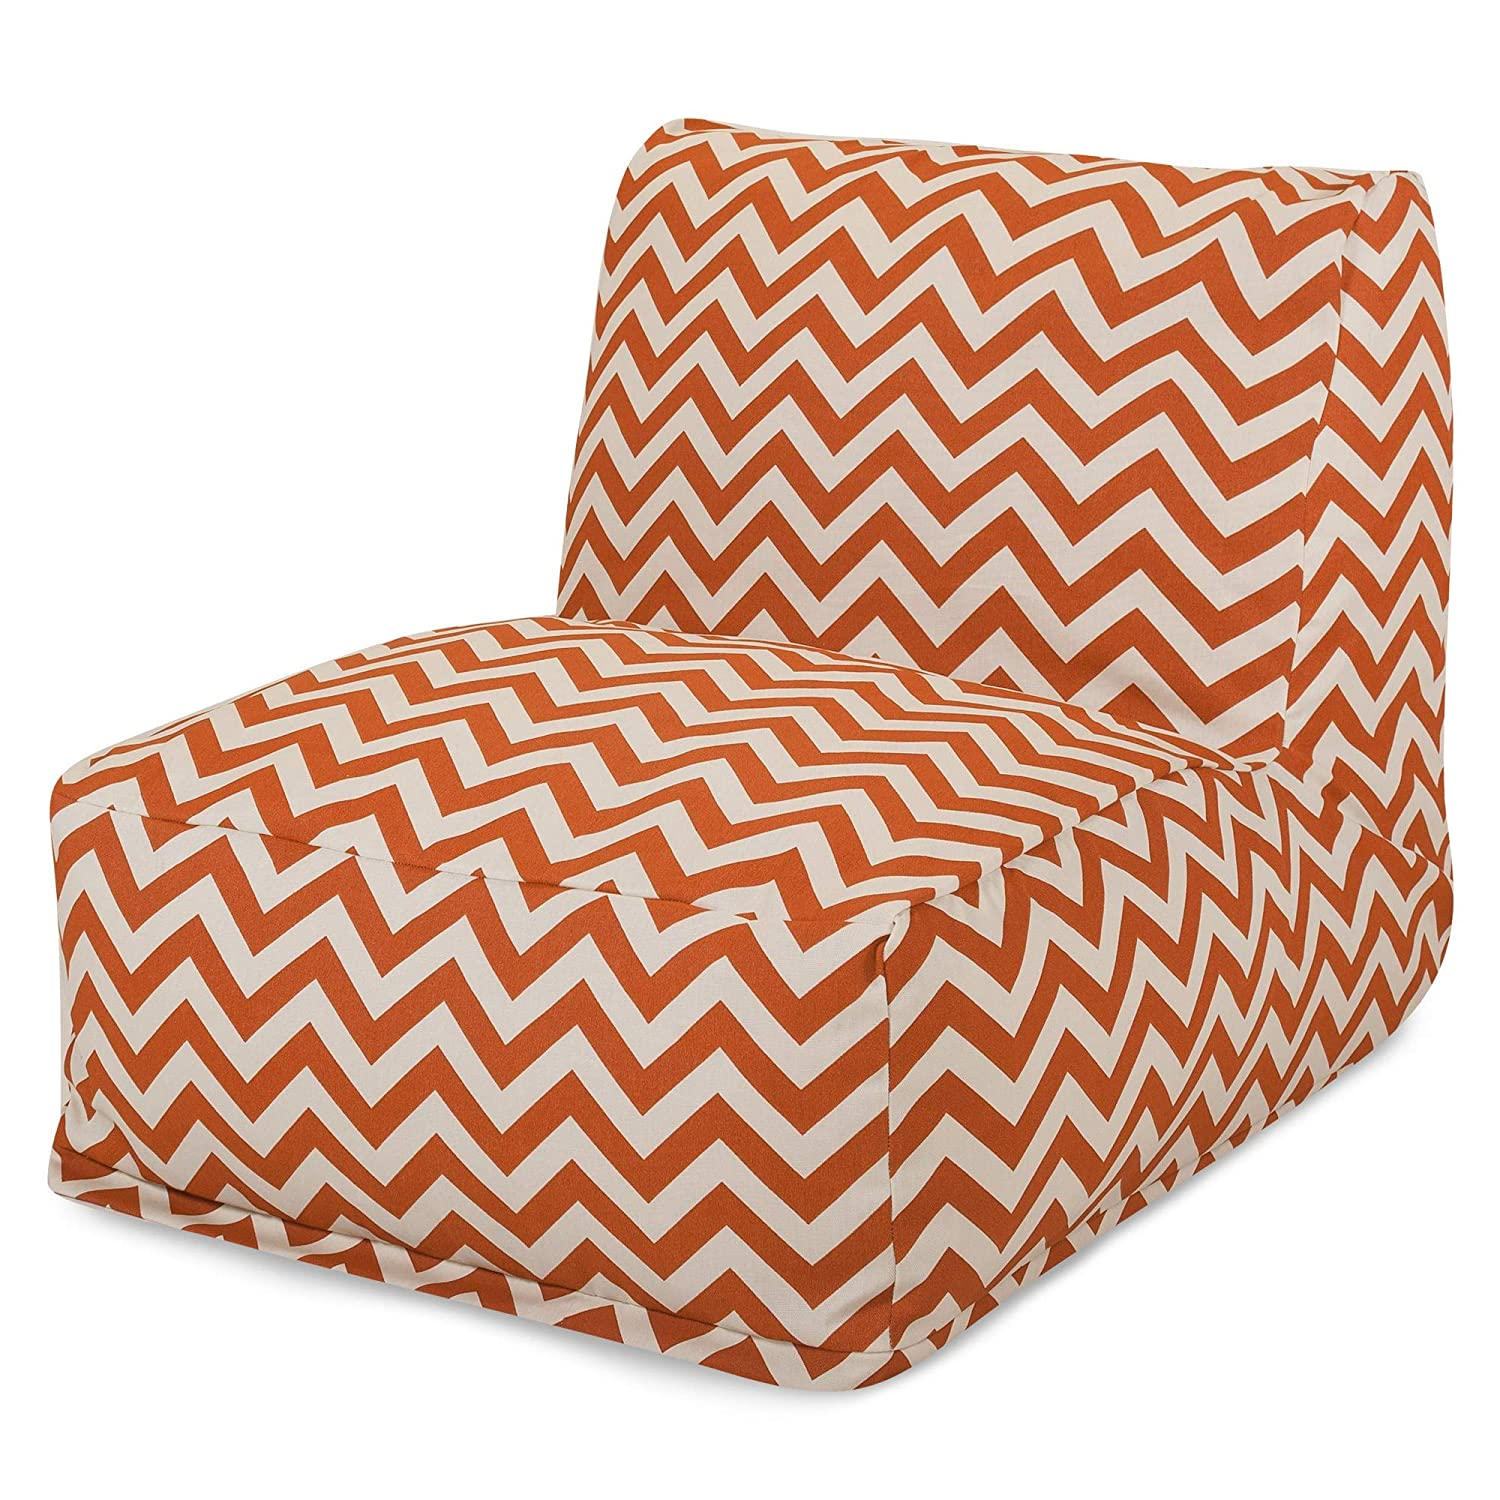 Marvelous Majestic Home Goods Burnt Orange Zig Zag Bean Bag Chair Machost Co Dining Chair Design Ideas Machostcouk